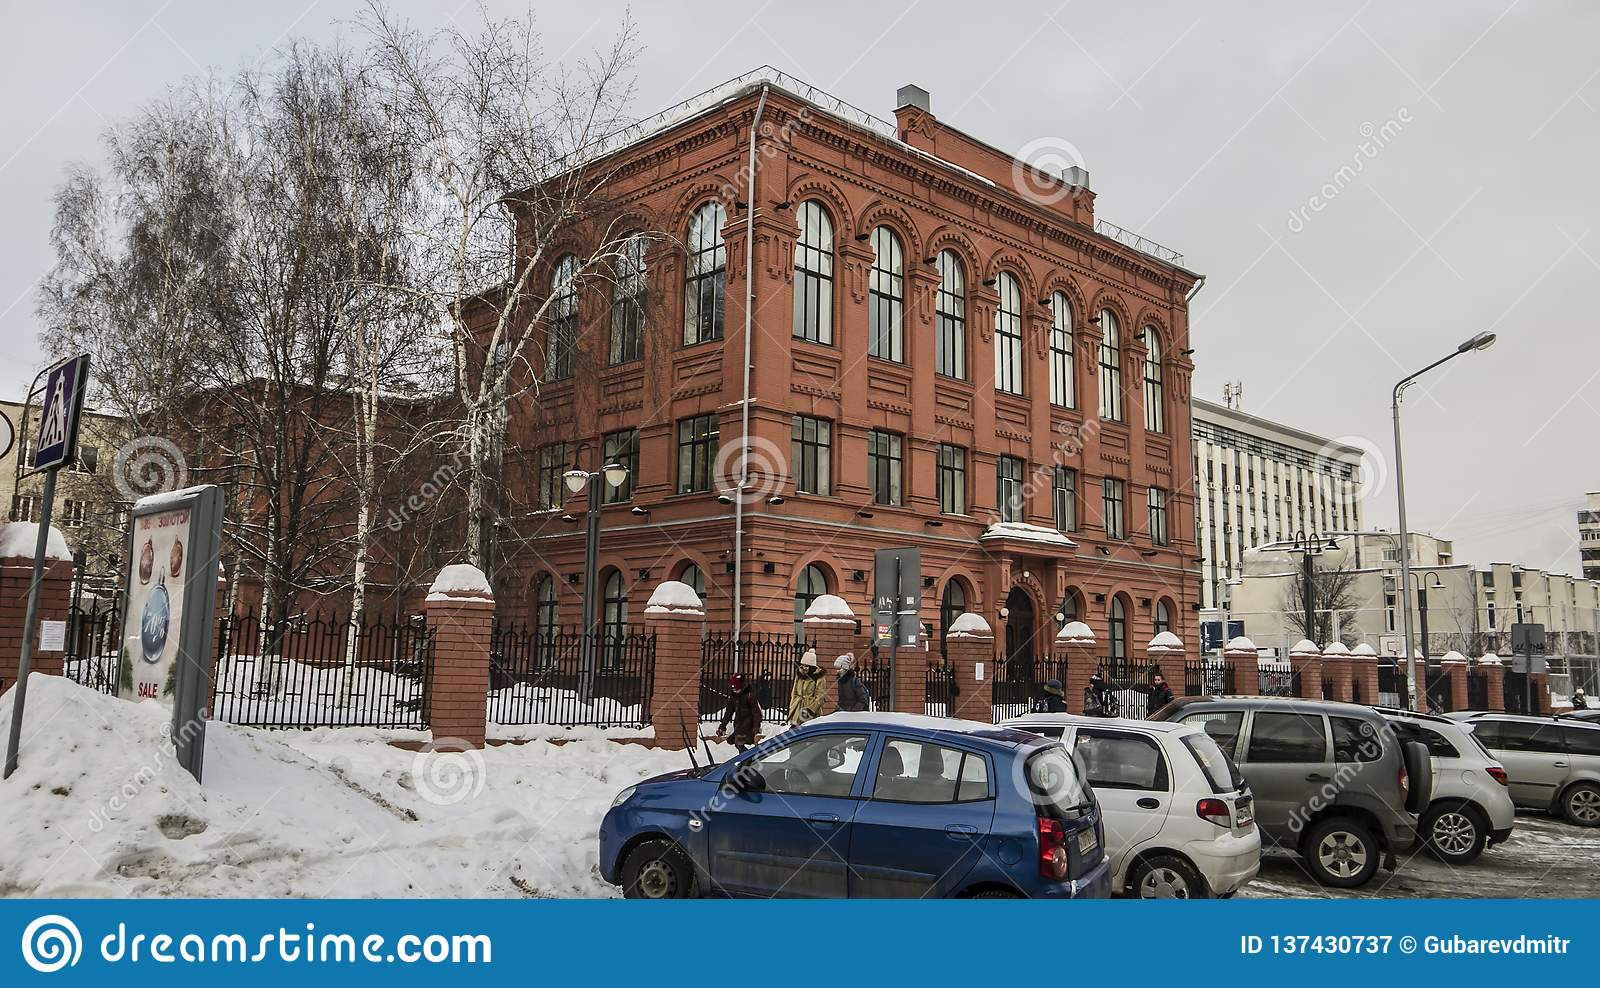 Russian Federation, Belgorod city, people`s boulevard 74 school number 9, a monument of architecture